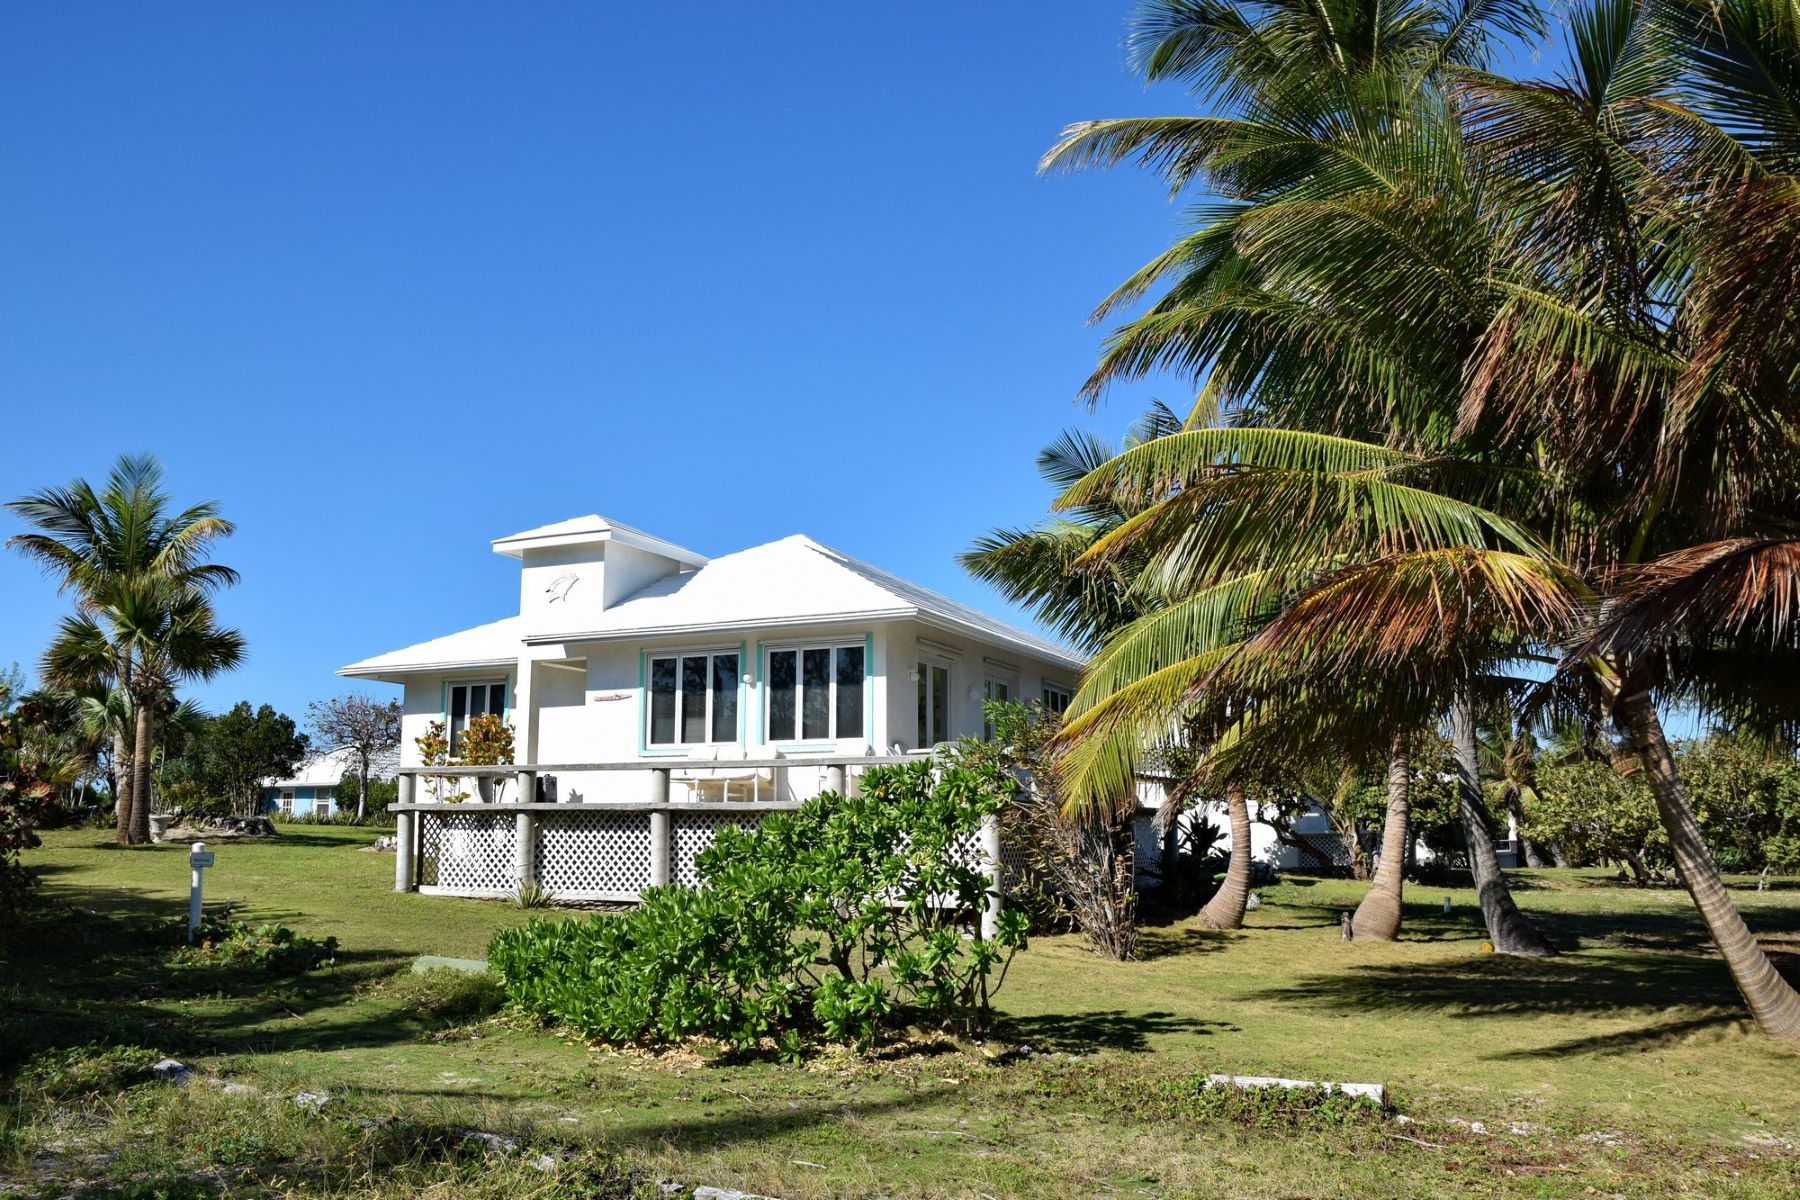 Maison unifamiliale pour l à vendre à Sea Shell Cottage Green Turtle Cay, Abaco, Bahamas